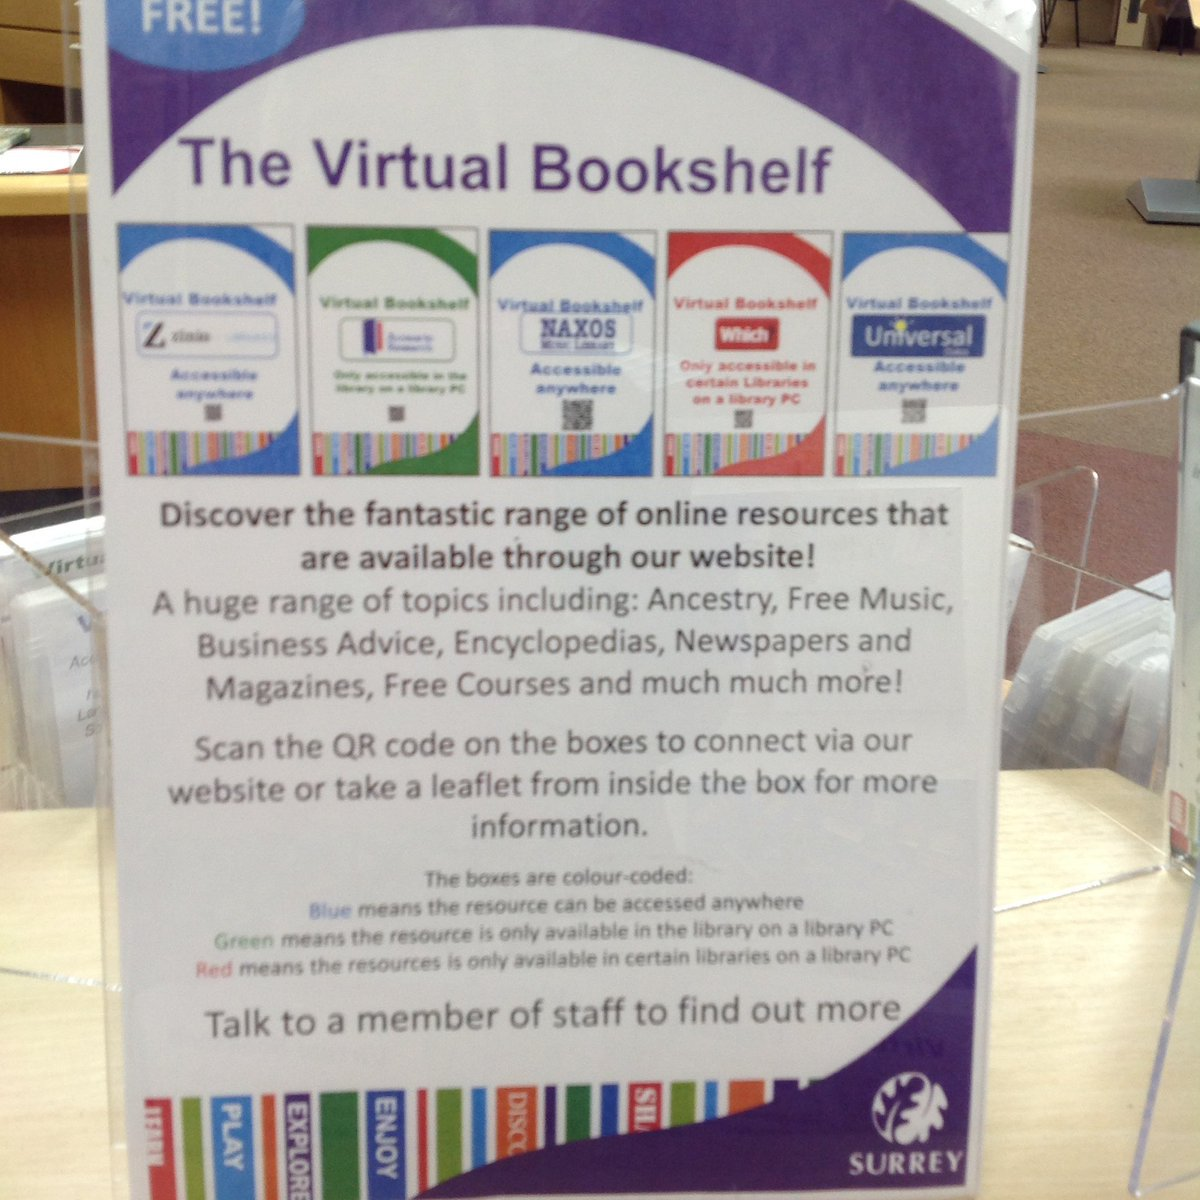 Co colour coordinated bookshelf - Discover Our Virtual Bookshelf Here Staineslibrary Have A Browse And Then Use The Online Resources Either At The Library Or At Home Pic Twitter Com